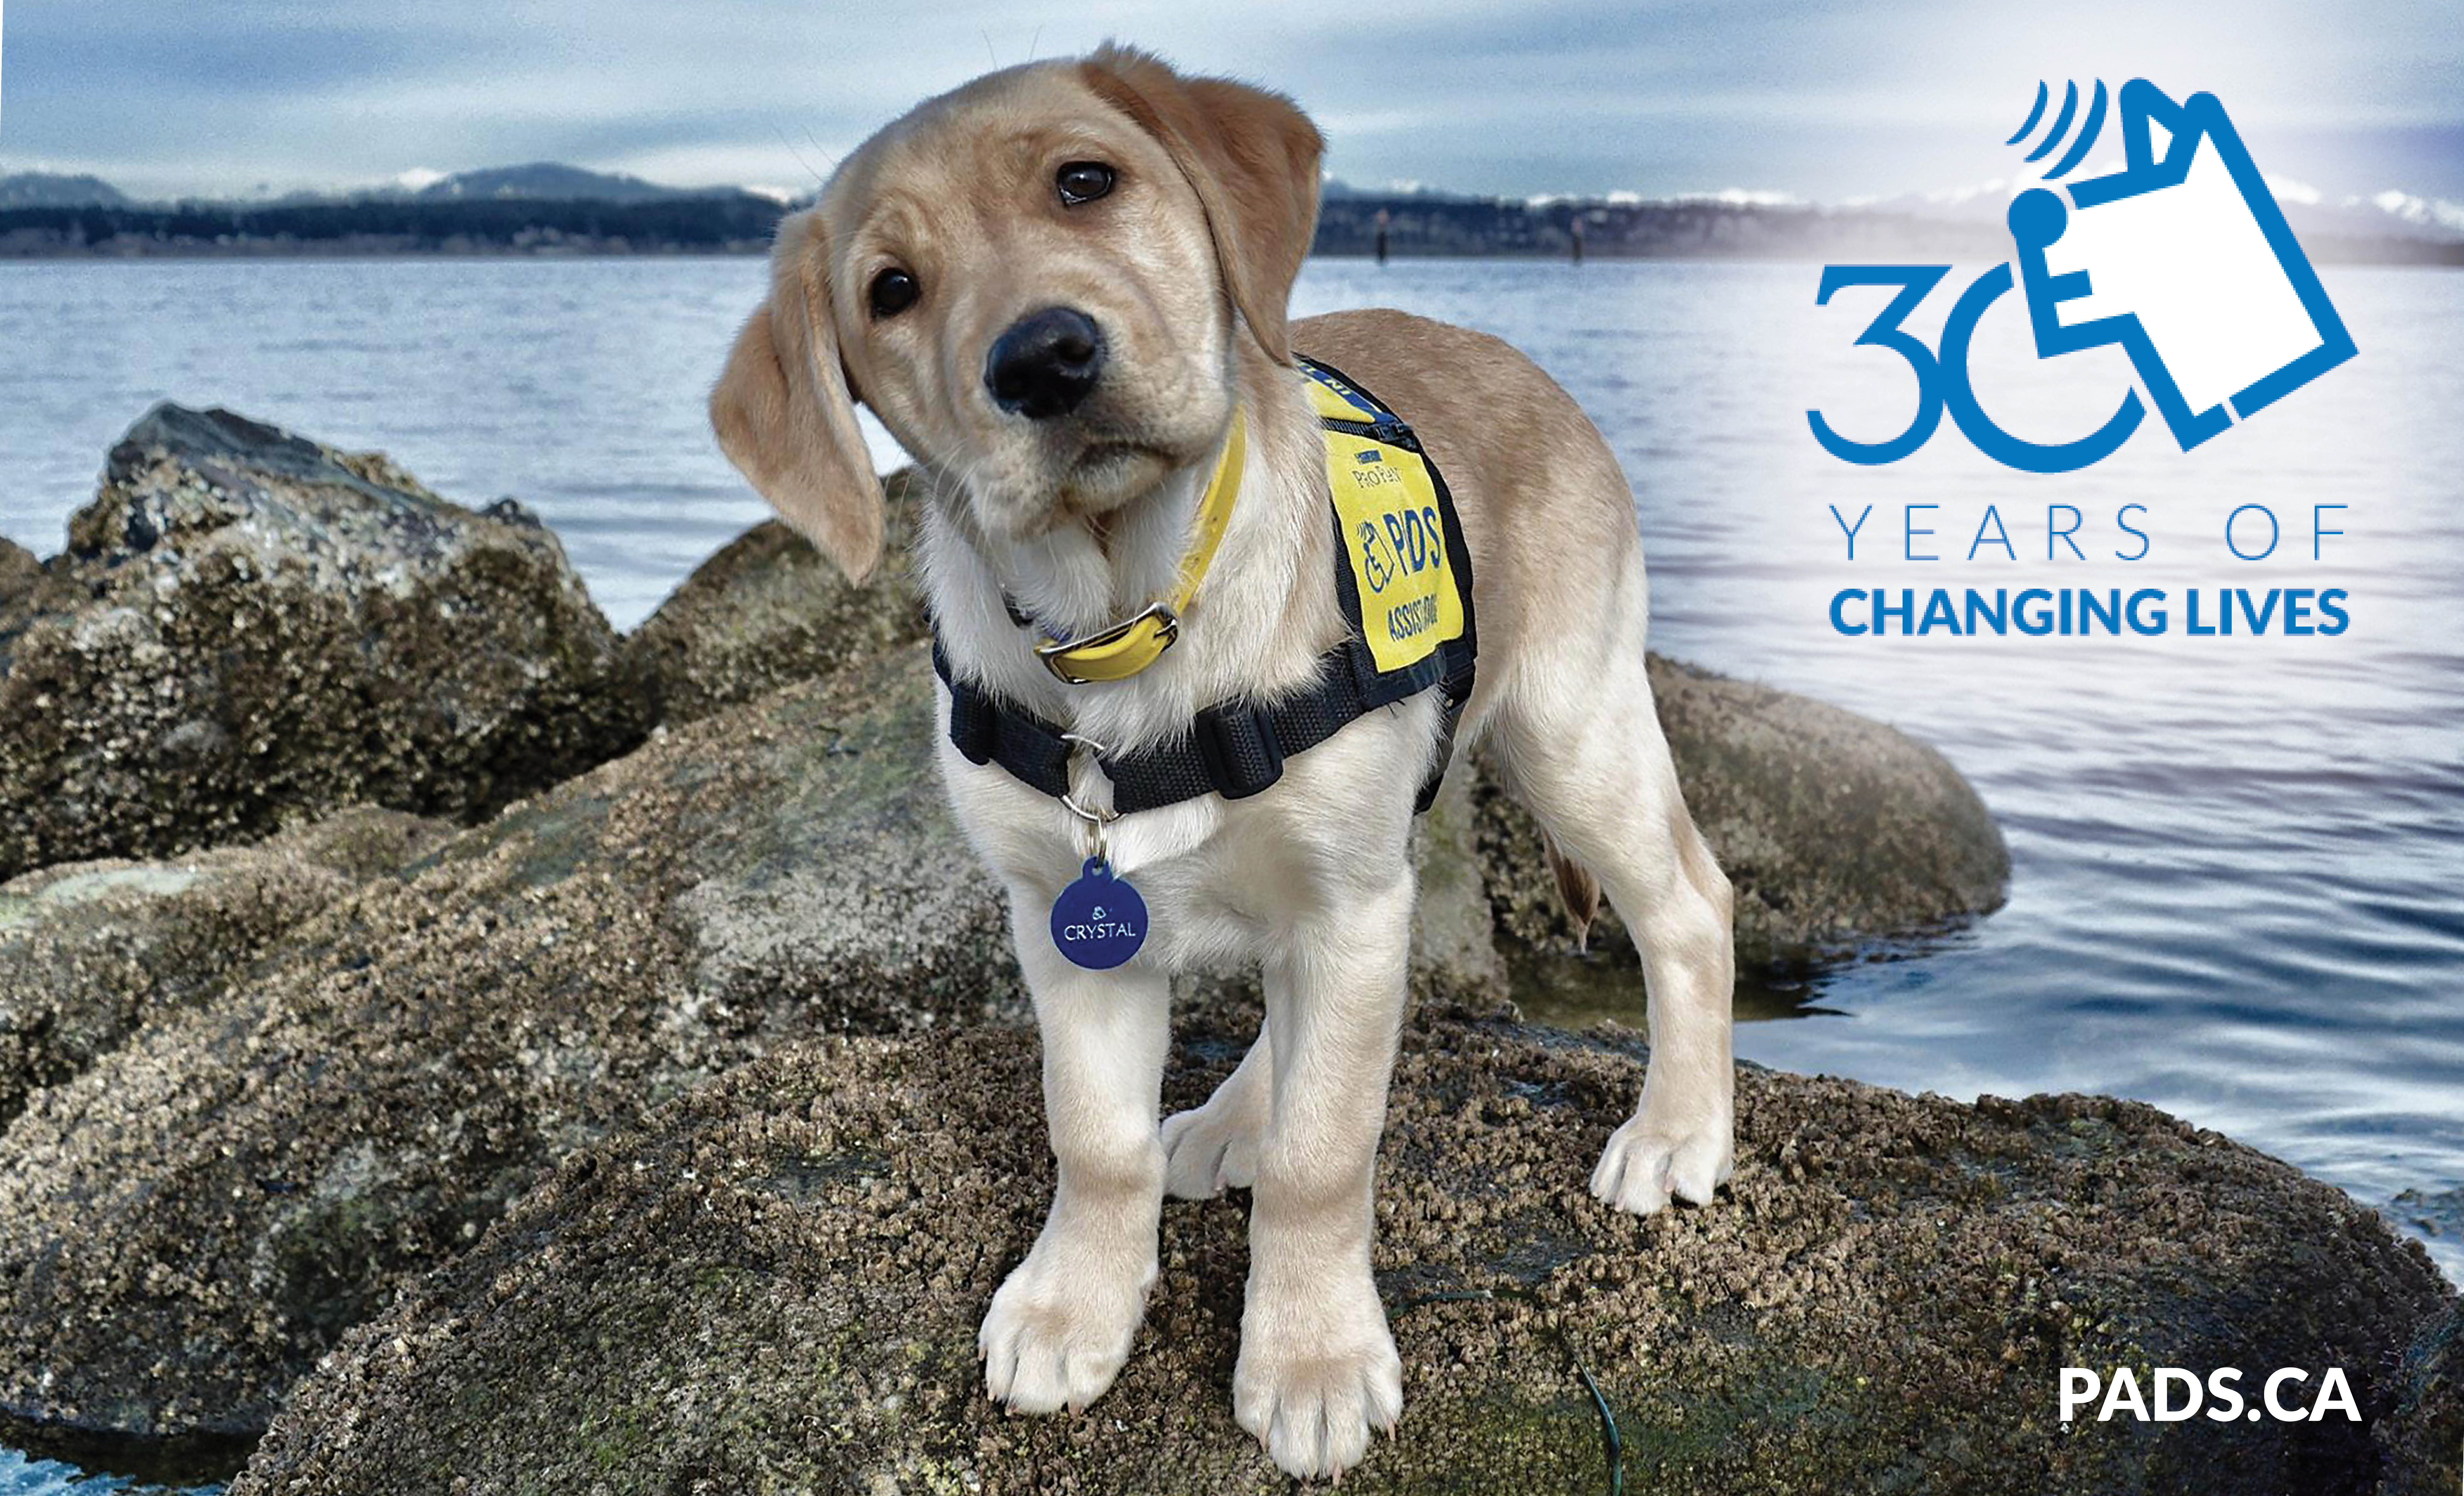 Today marks 30 years of changing lives… from humble beginnings of a small group of like-minded people that set out train rescue dogs to be hearing dogs for ...